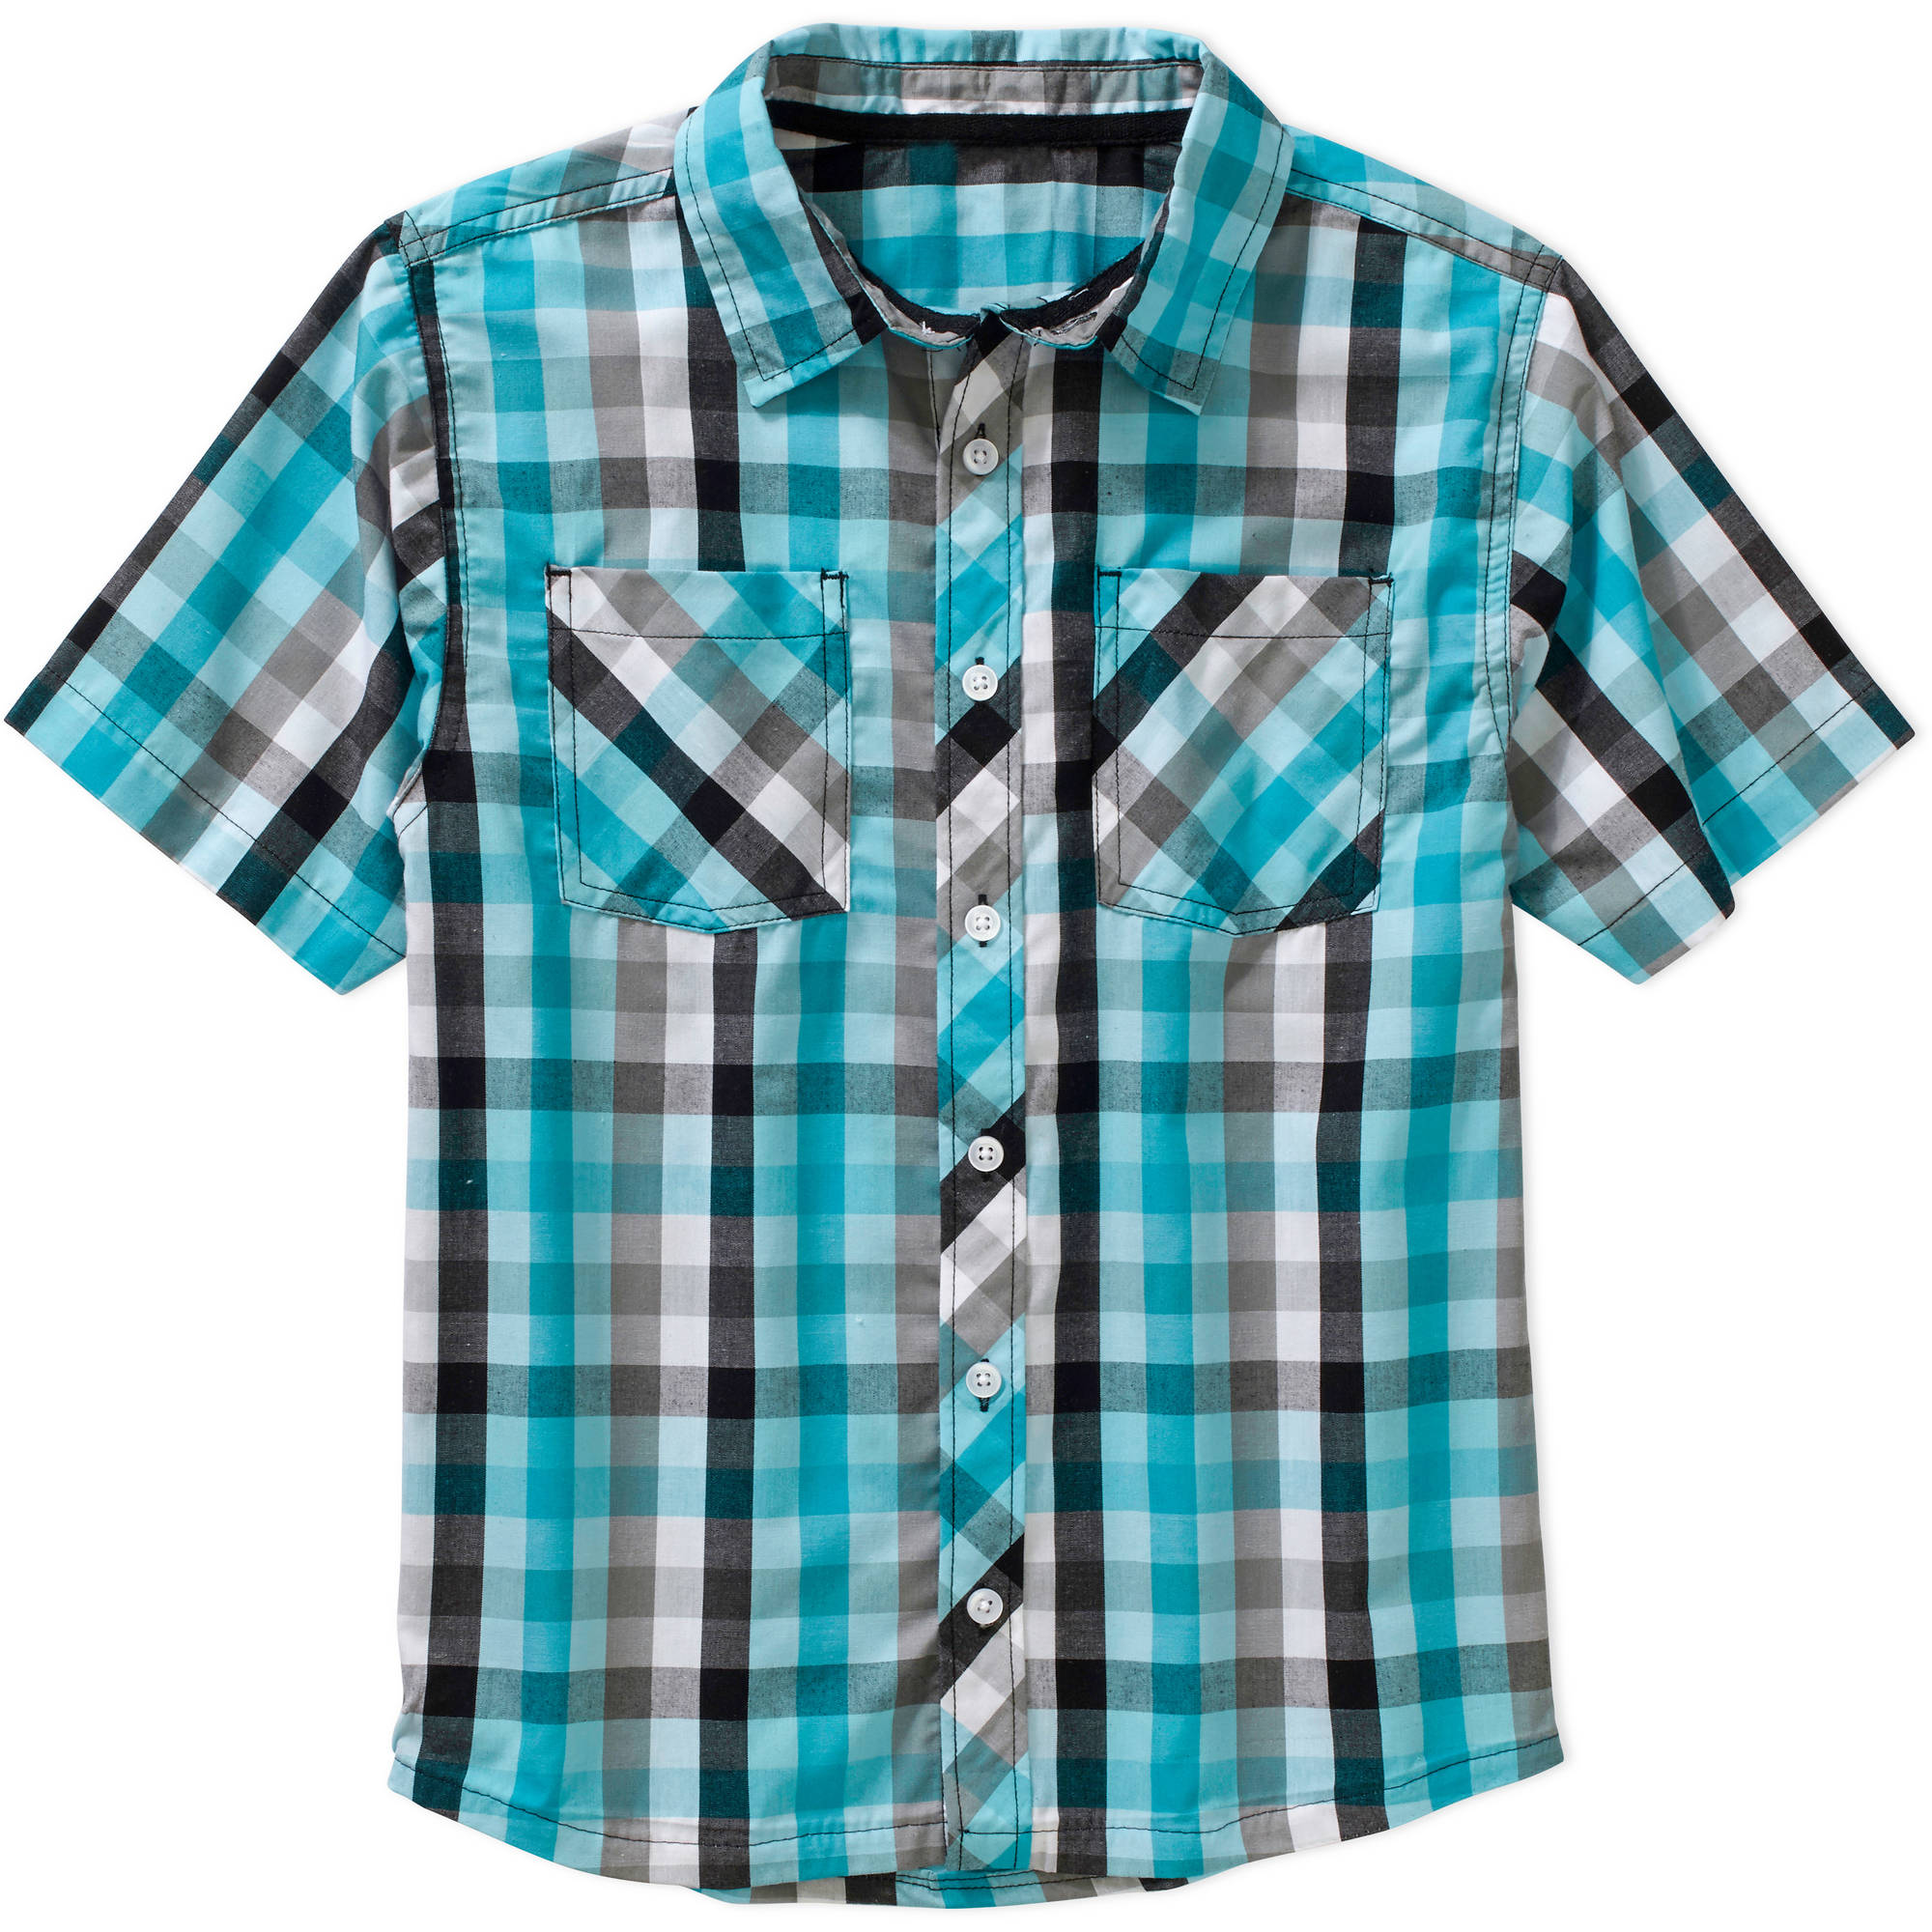 Mick Mack Boys' Short Sleeve Plaid Woven Shirt